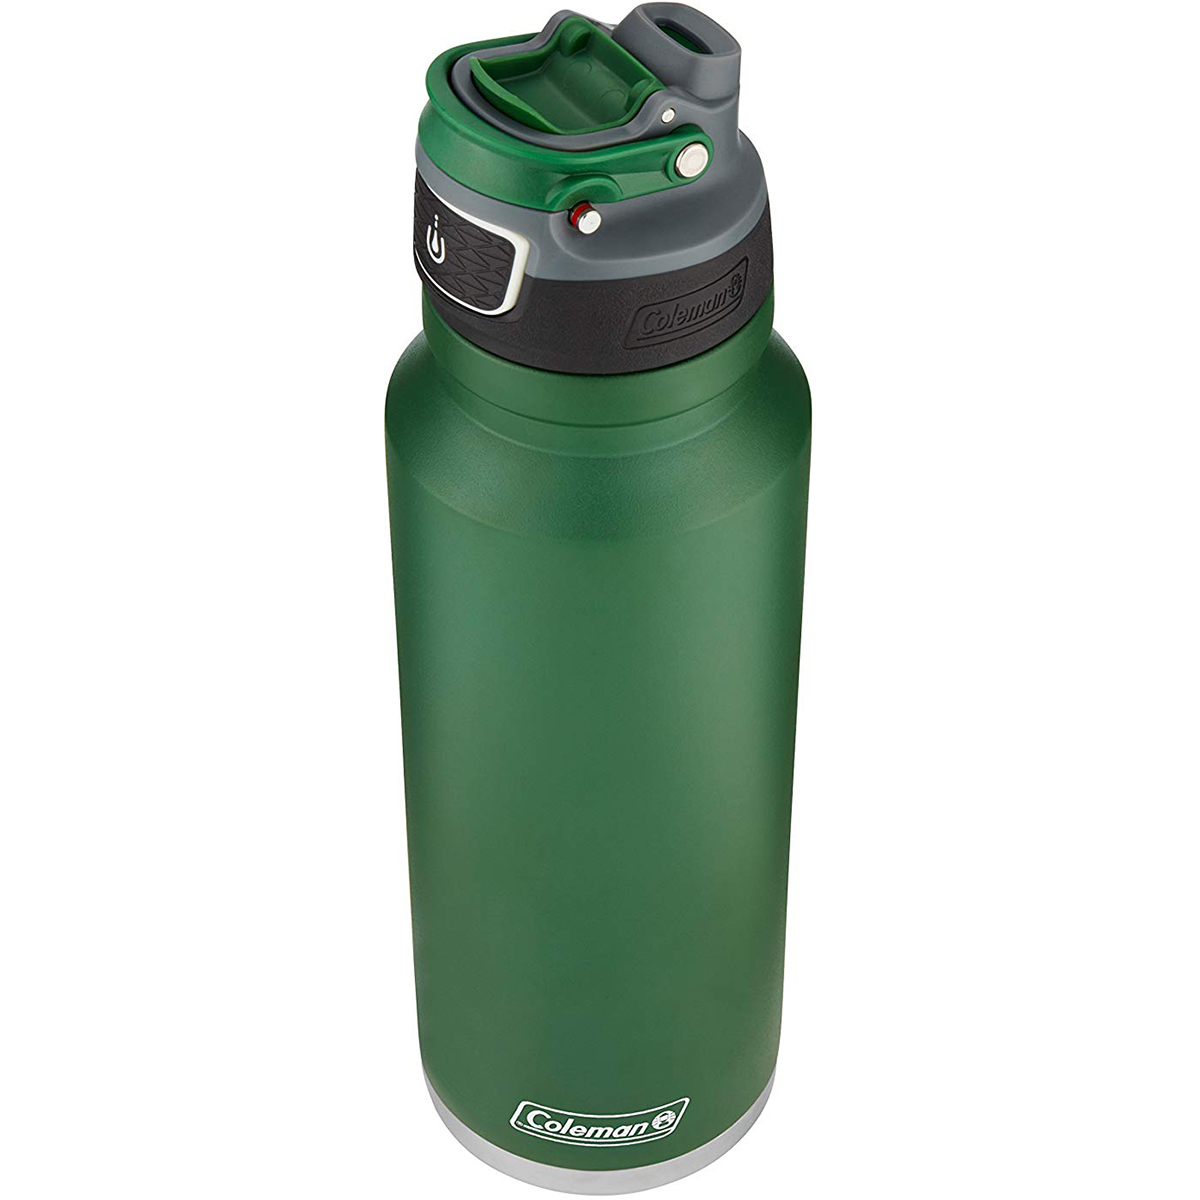 thumbnail 8 - Coleman 40 oz. Free Flow Autoseal Insulated Stainless Steel Water Bottle